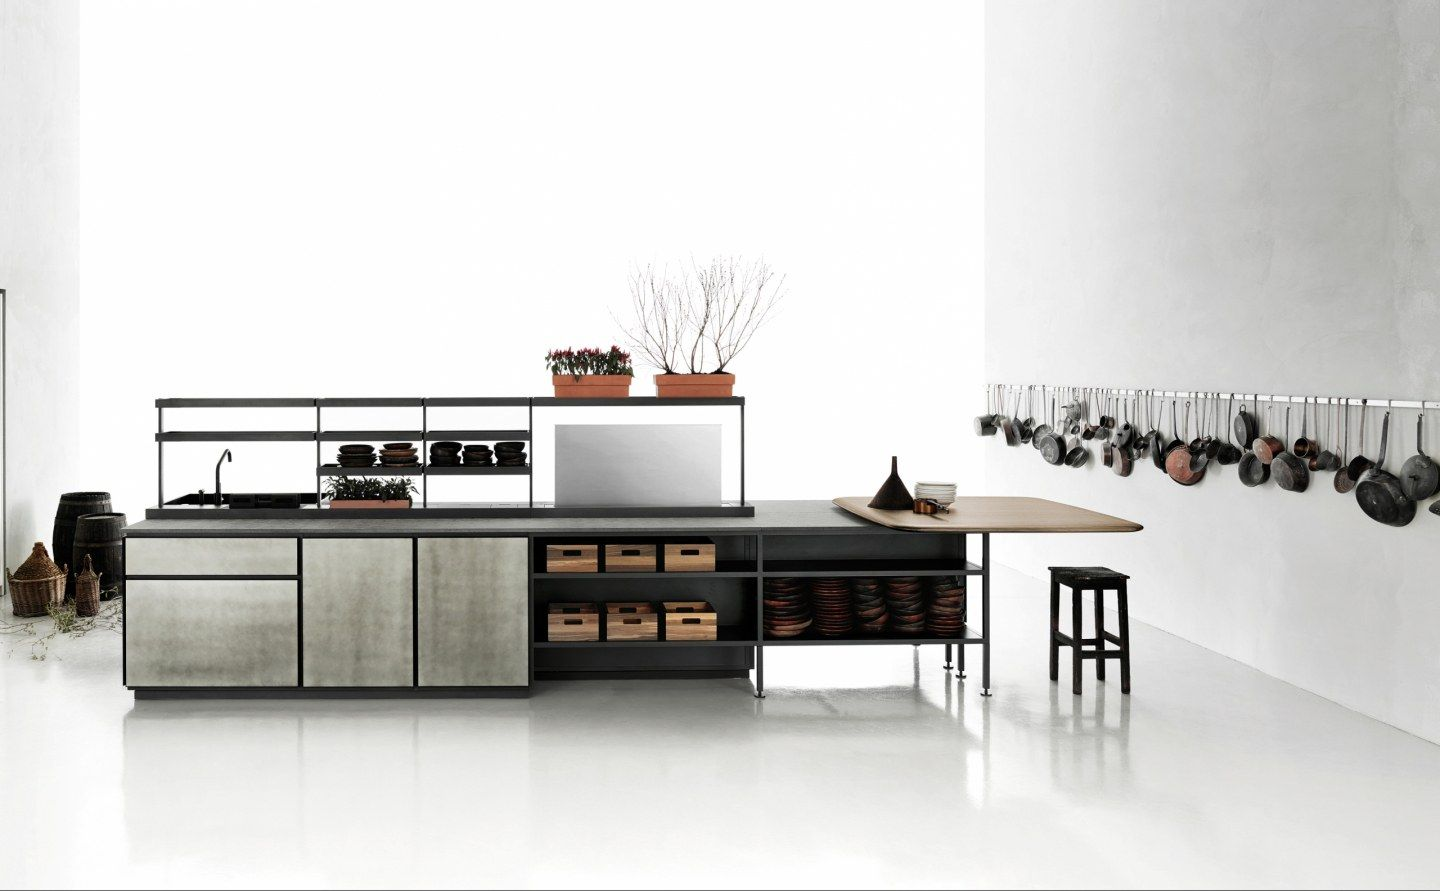 Salinas Cucine Boffi Official Website 画像あり キッチン